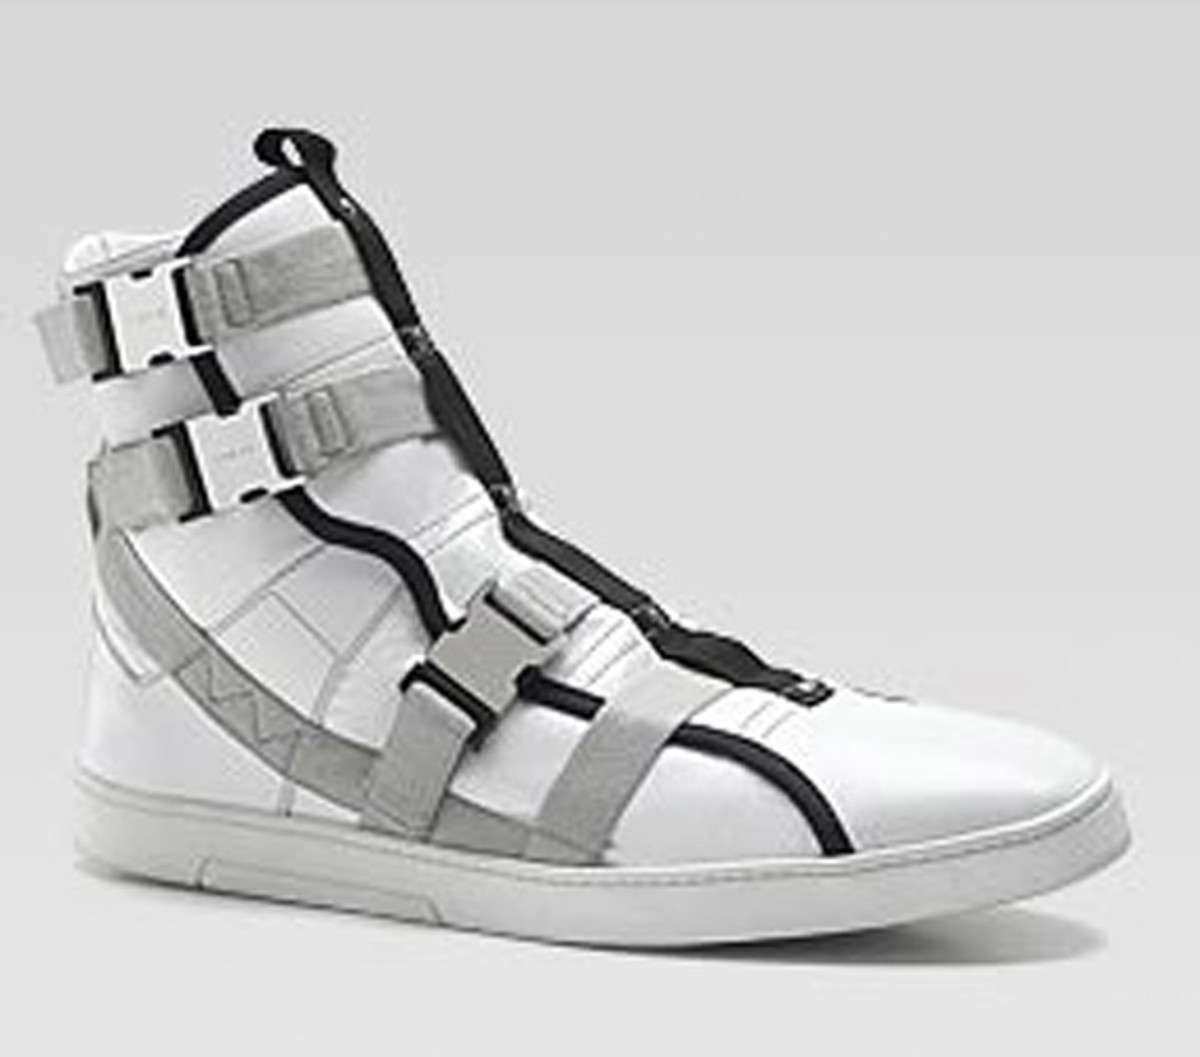 4f0c85afec3 GUCCI - Spring Summer 2010 - GSB9 High Top Buckle Sneakers - Freshness Mag